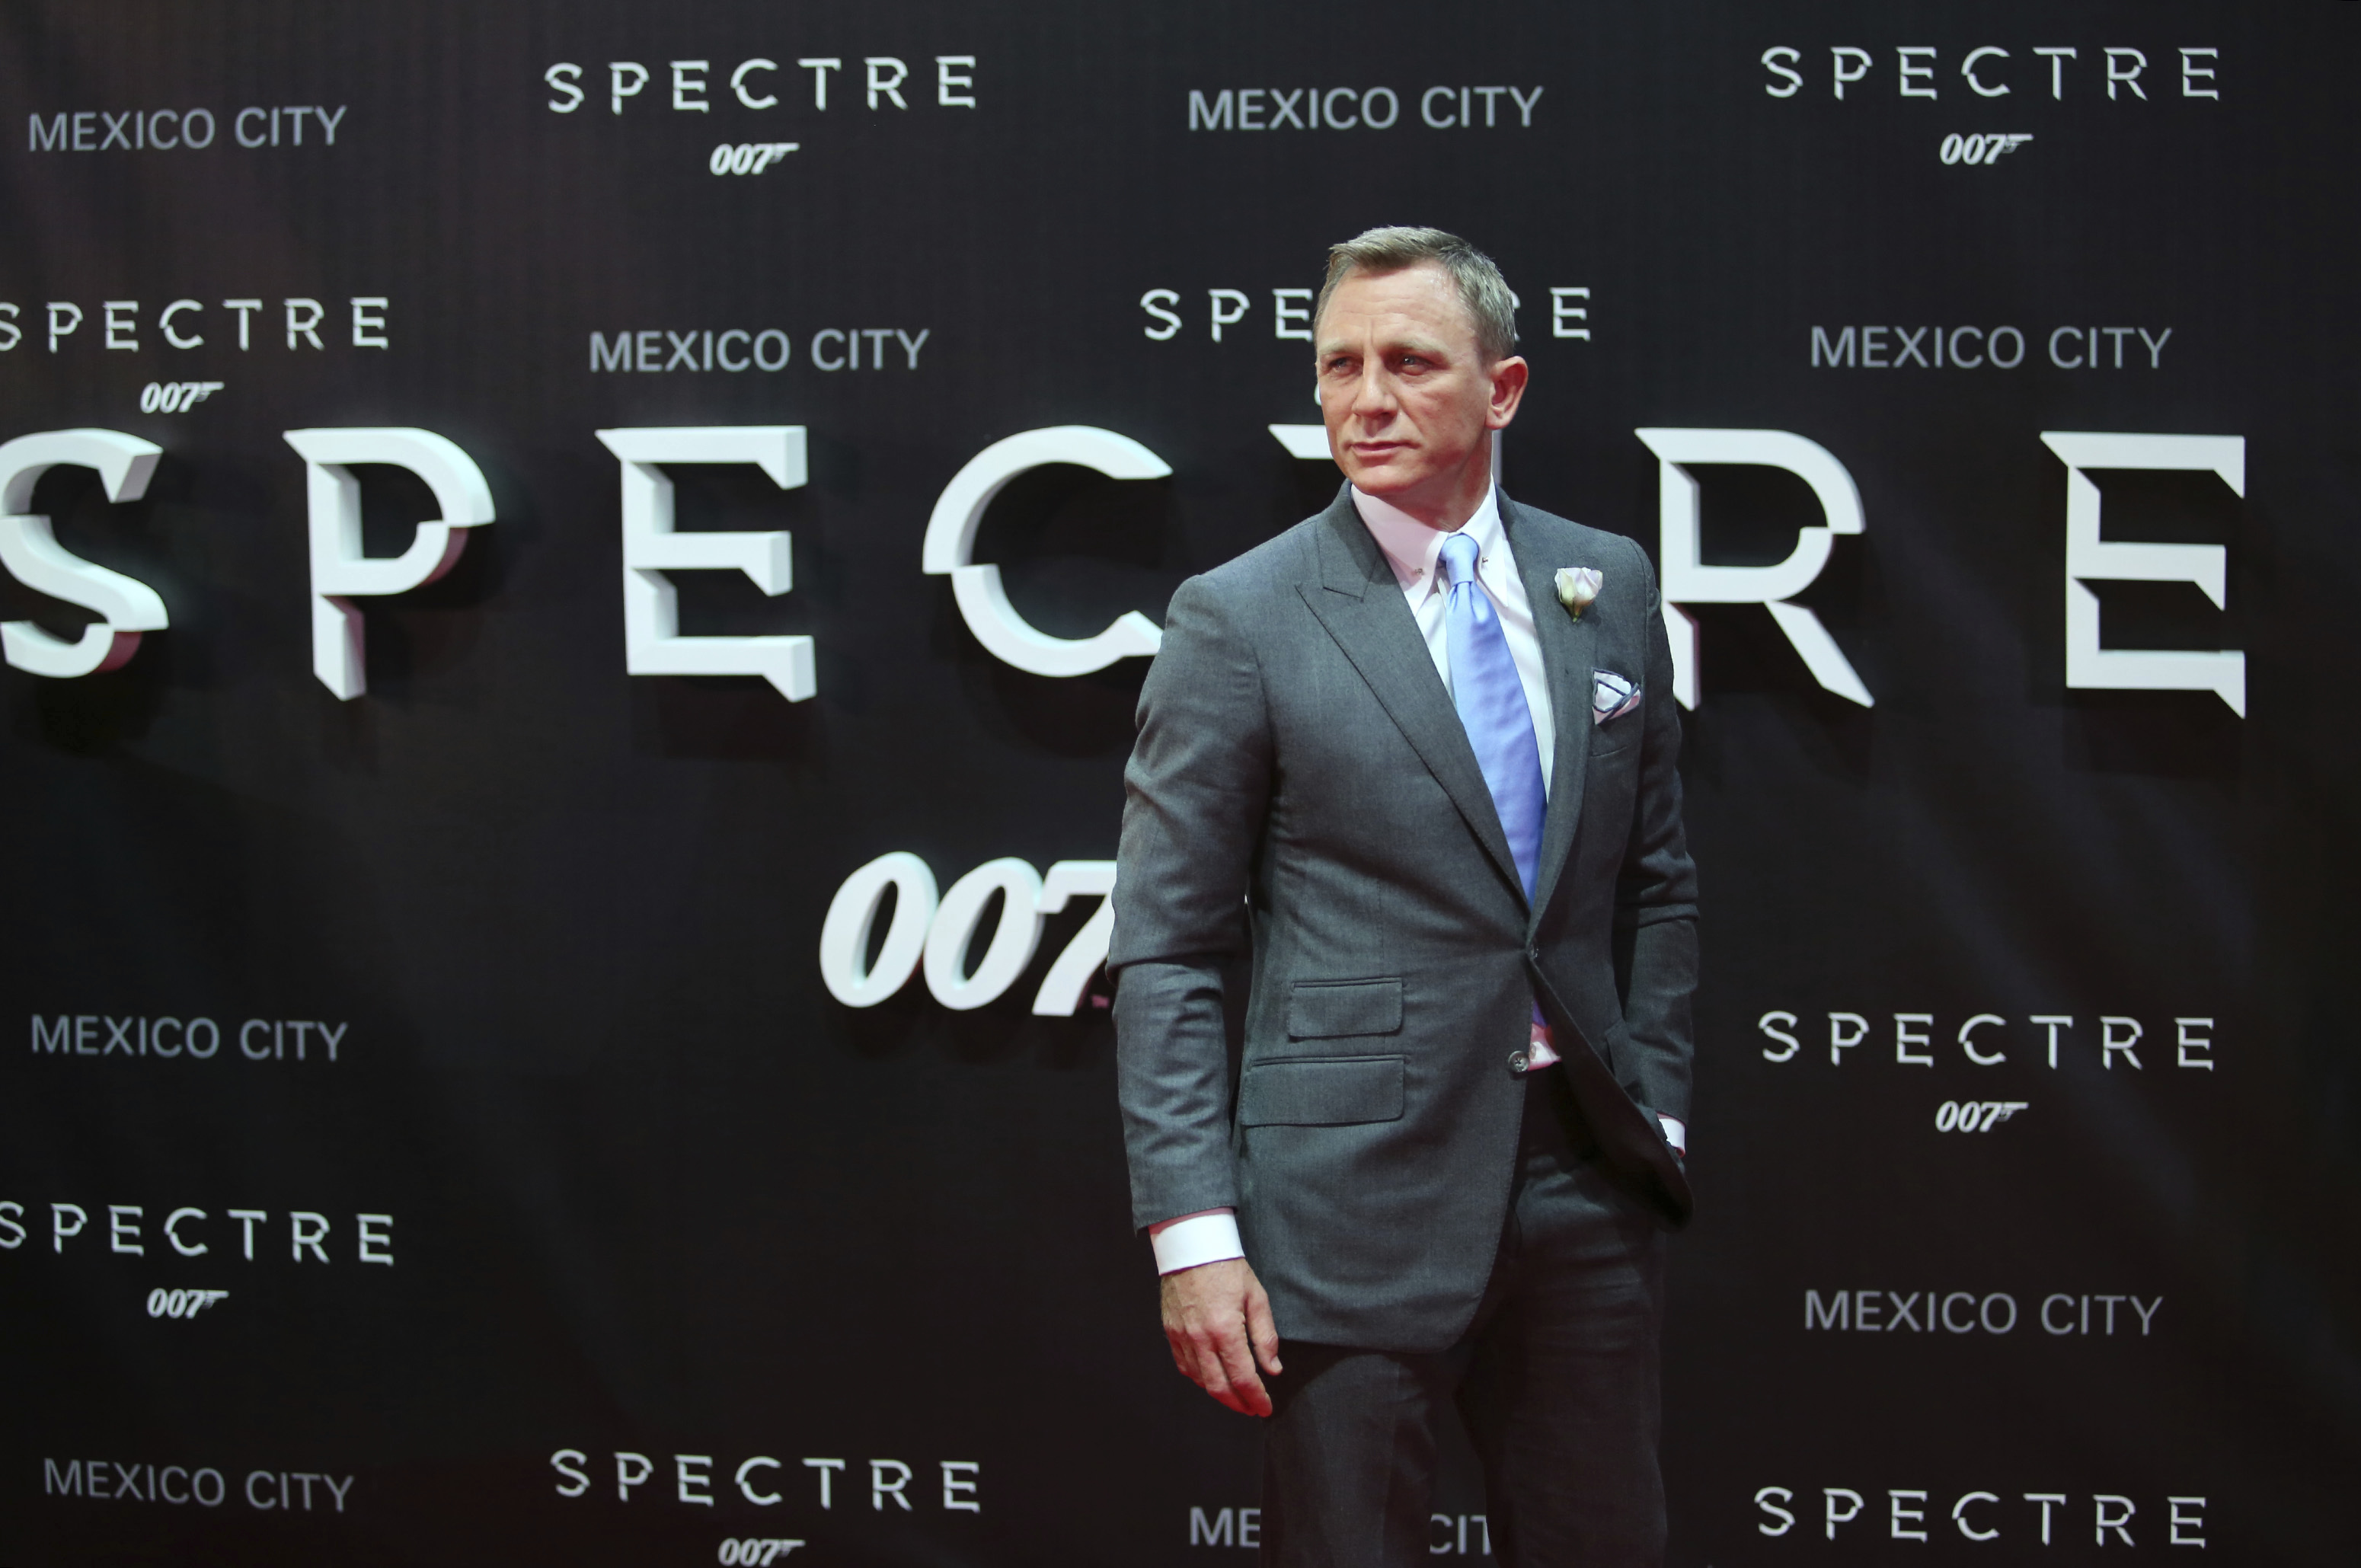 Apple and Amazon reportedly pursuing James Bond franchise rights